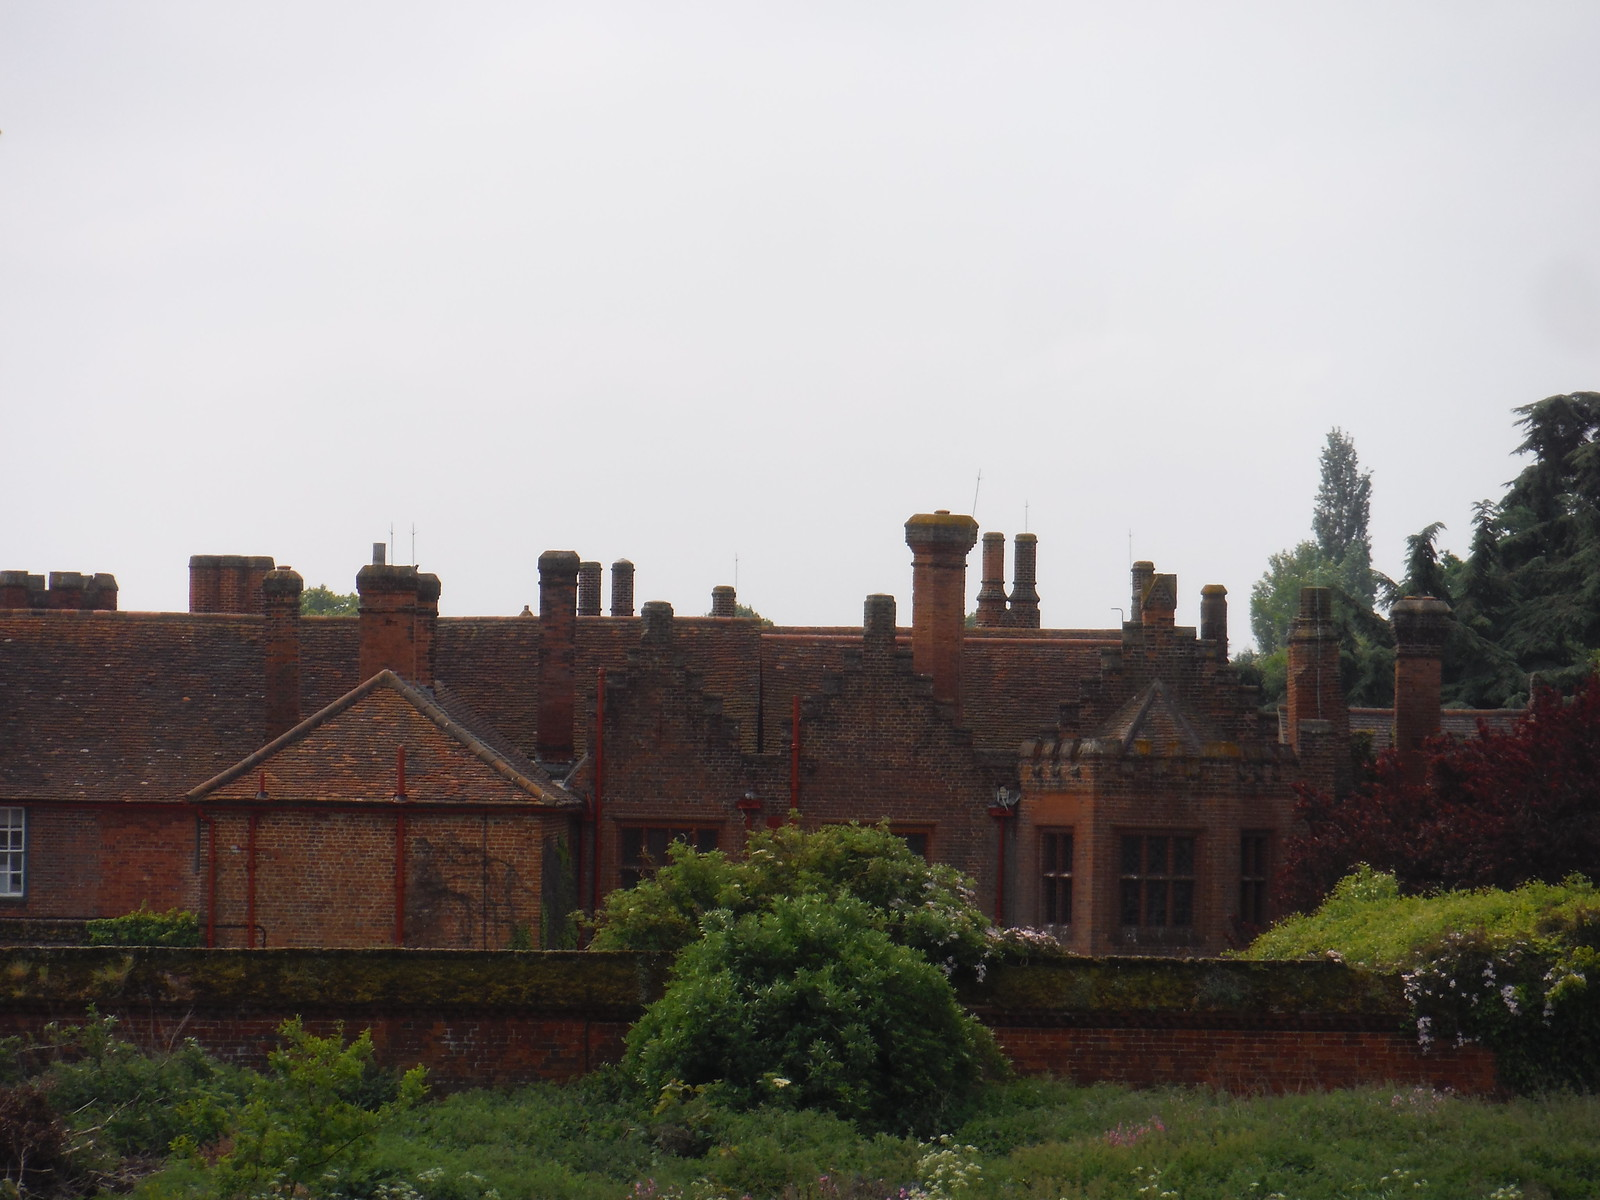 Ingatestone Hall SWC Walk 158 - Ingatestone to Battlesbridge or Wickford